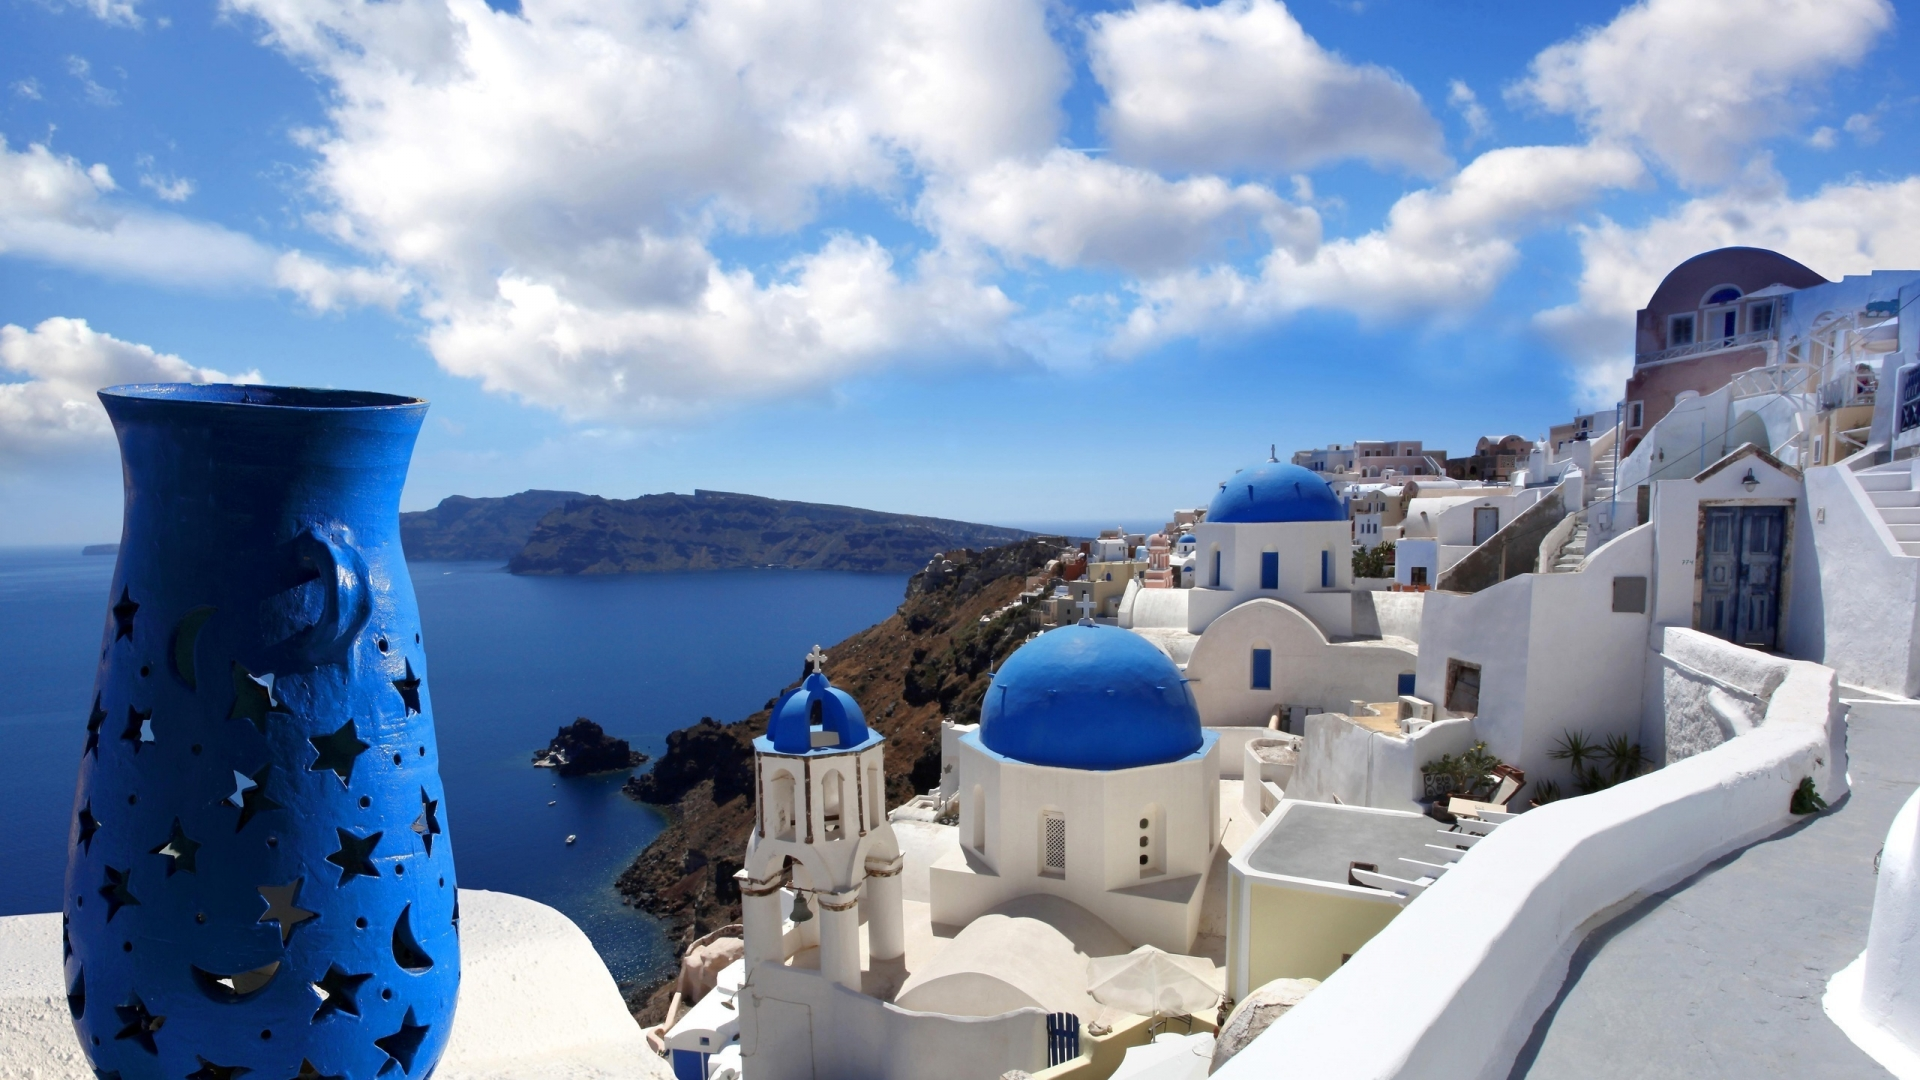 Blue-Santorini-Greece-1920-x-1080-Need-iPhone-S-Plus-Background-for-IPhoneSPlus-wallpaper-wp3603538